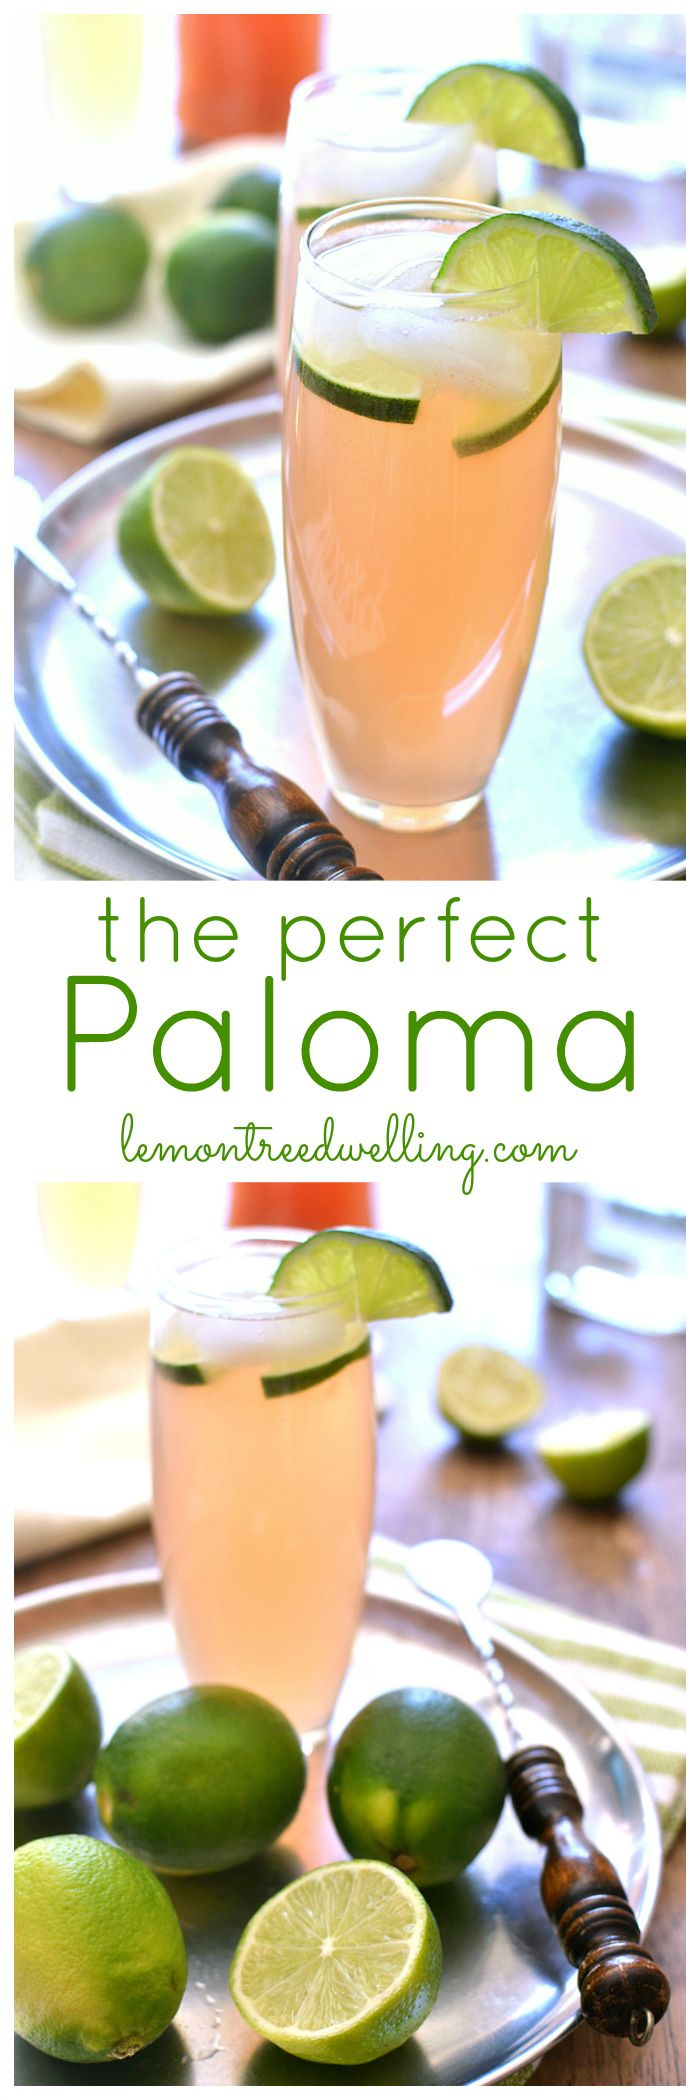 Paloma | Lemon Tree Dwelling